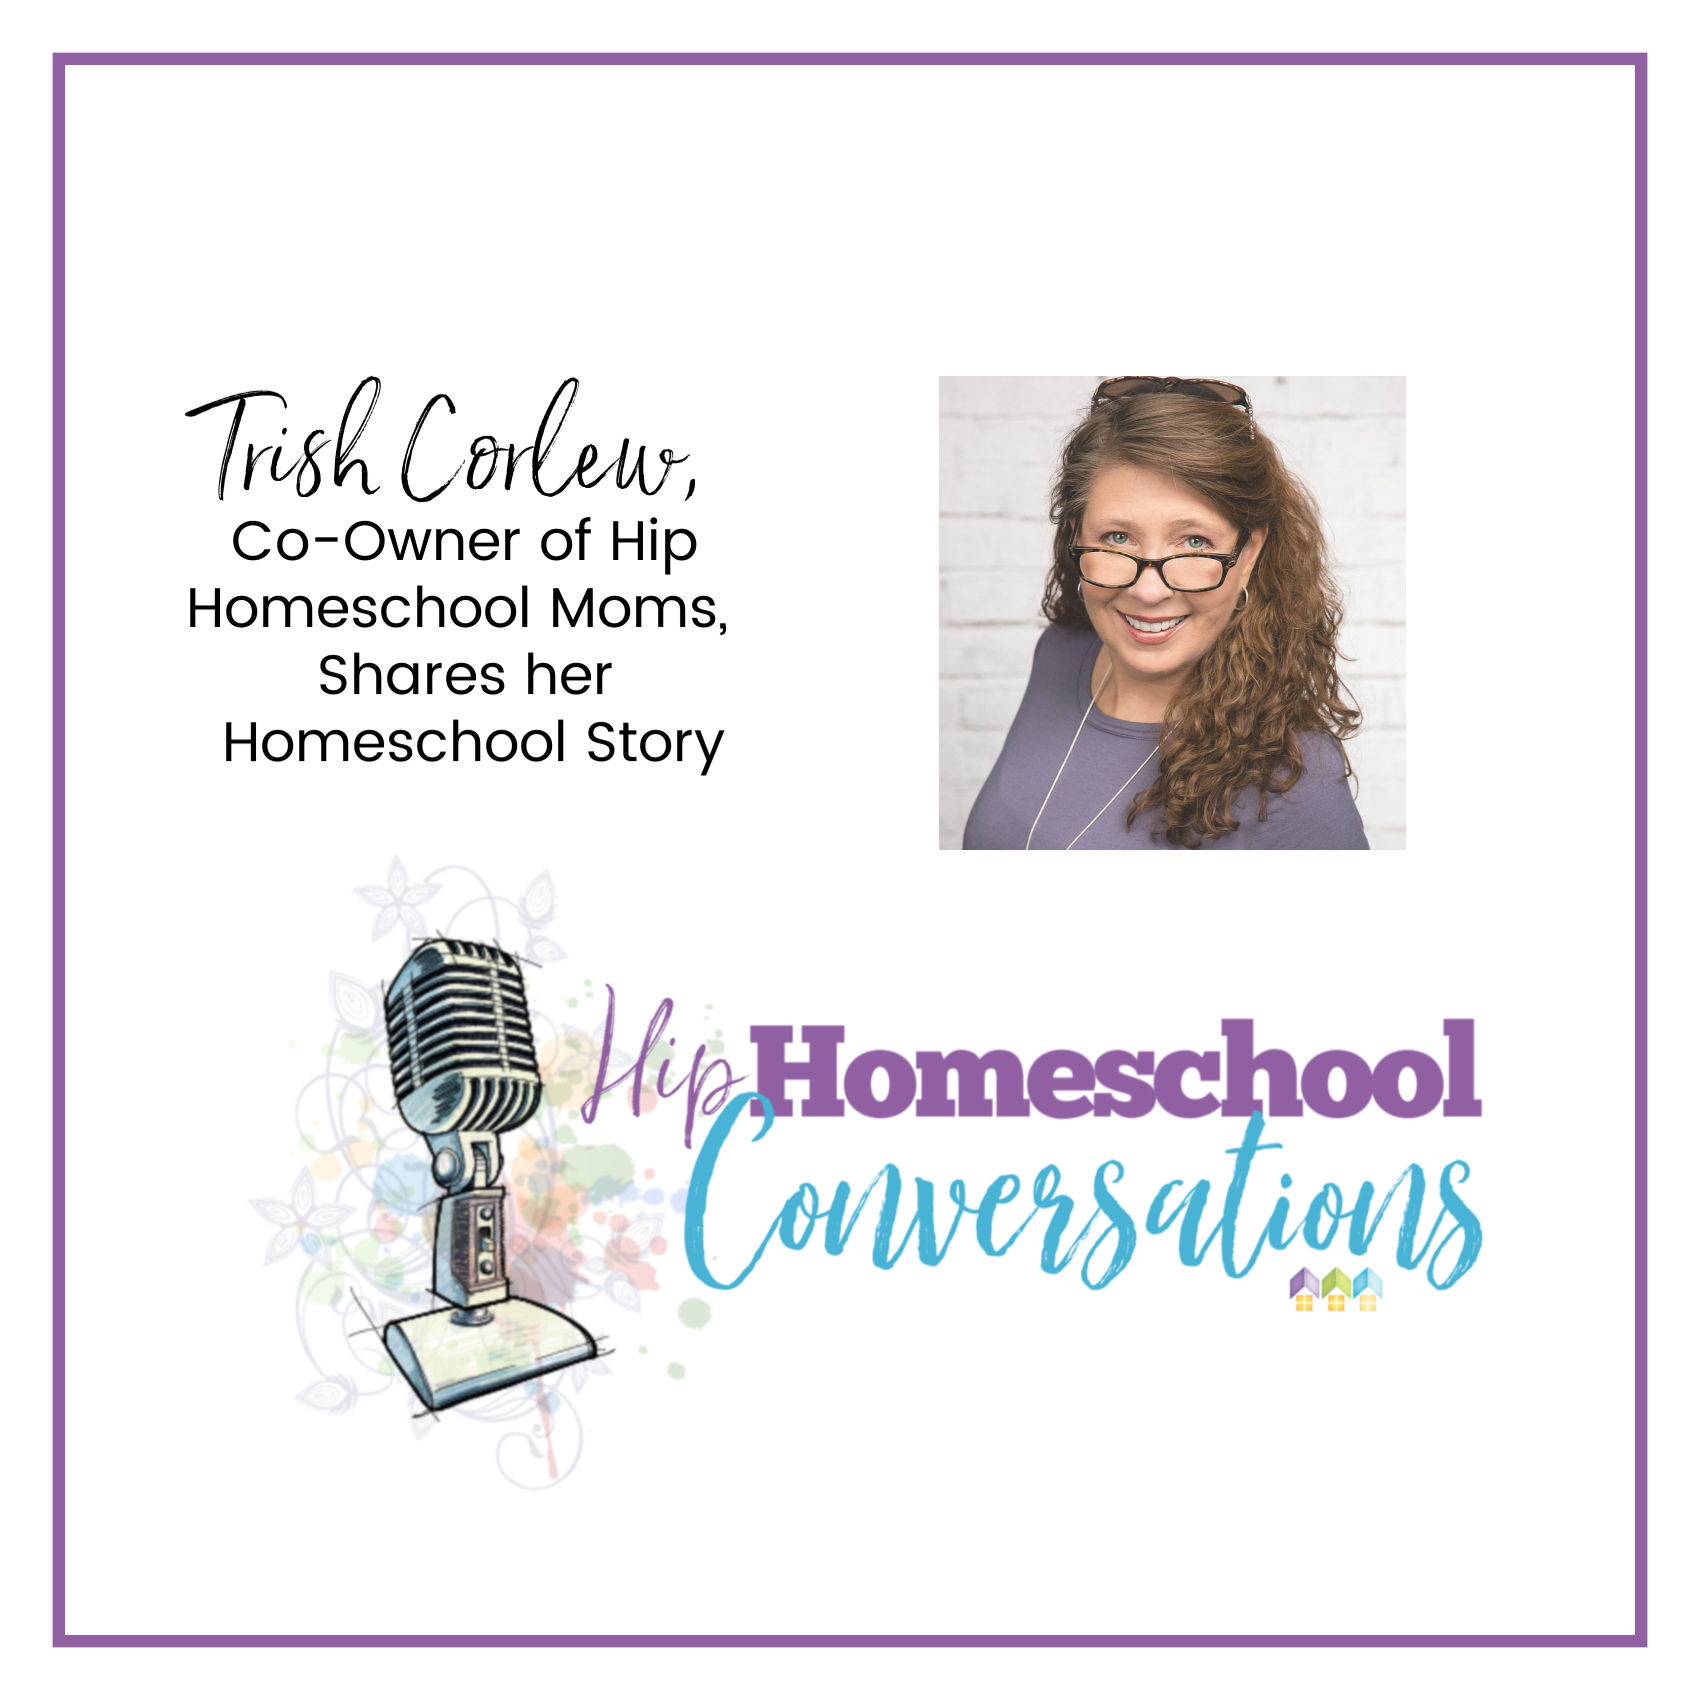 Trish Corlew, Co-owner of Hip Homeschool Moms, Shares Her Homeschool Story